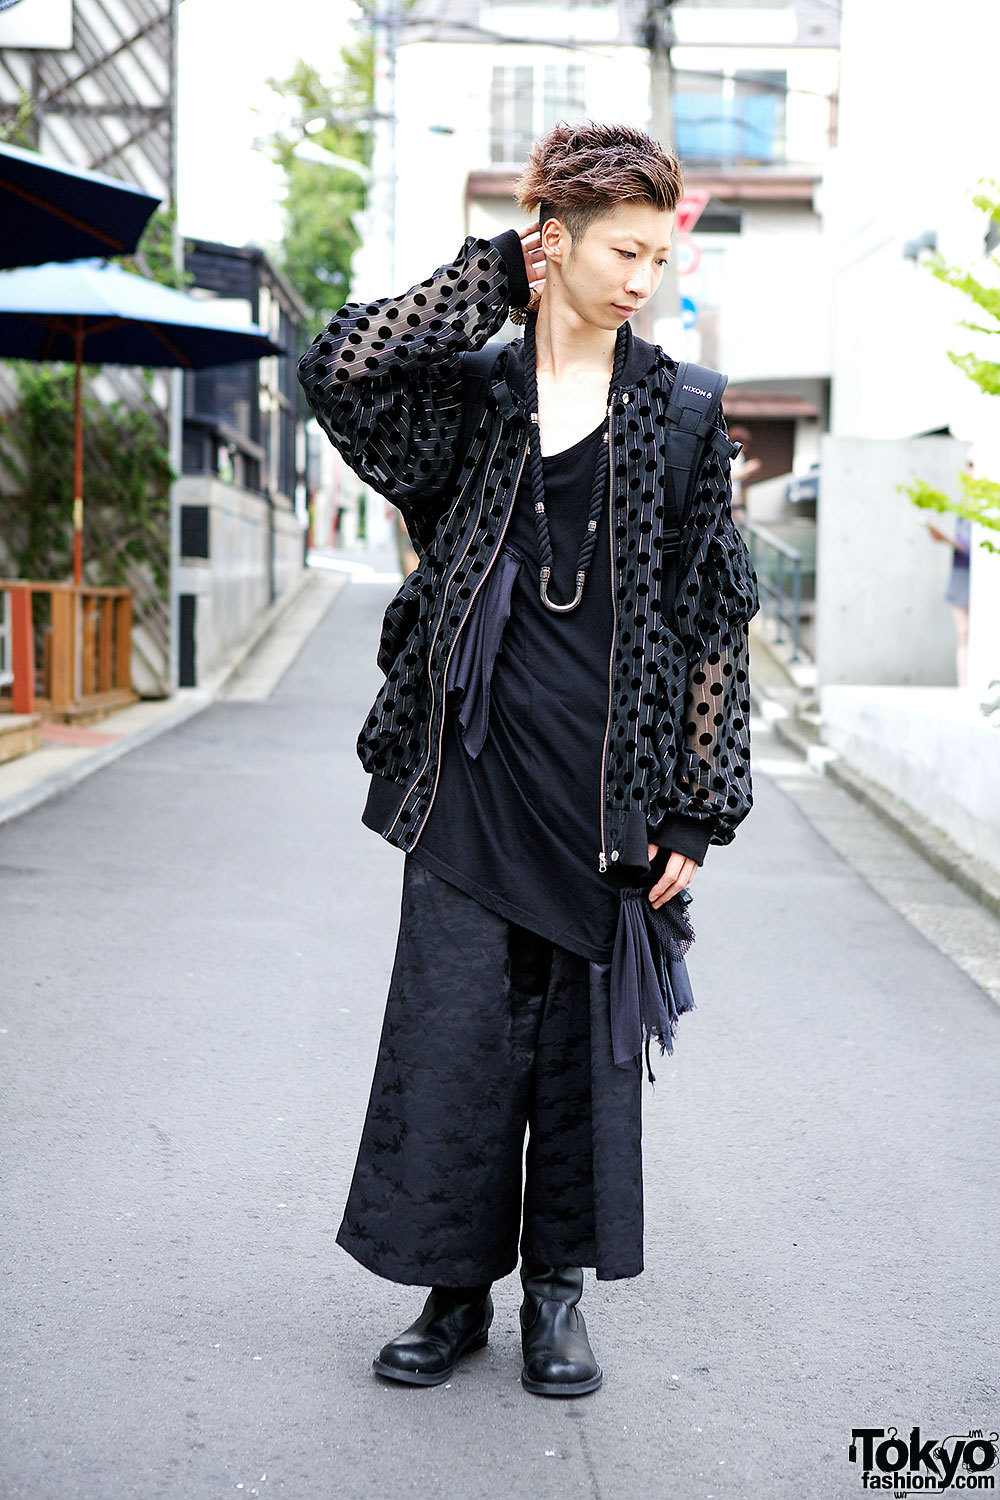 Mizuho from Monomania Harajuku wearing an all-black outfit put together from Monomania pieces.